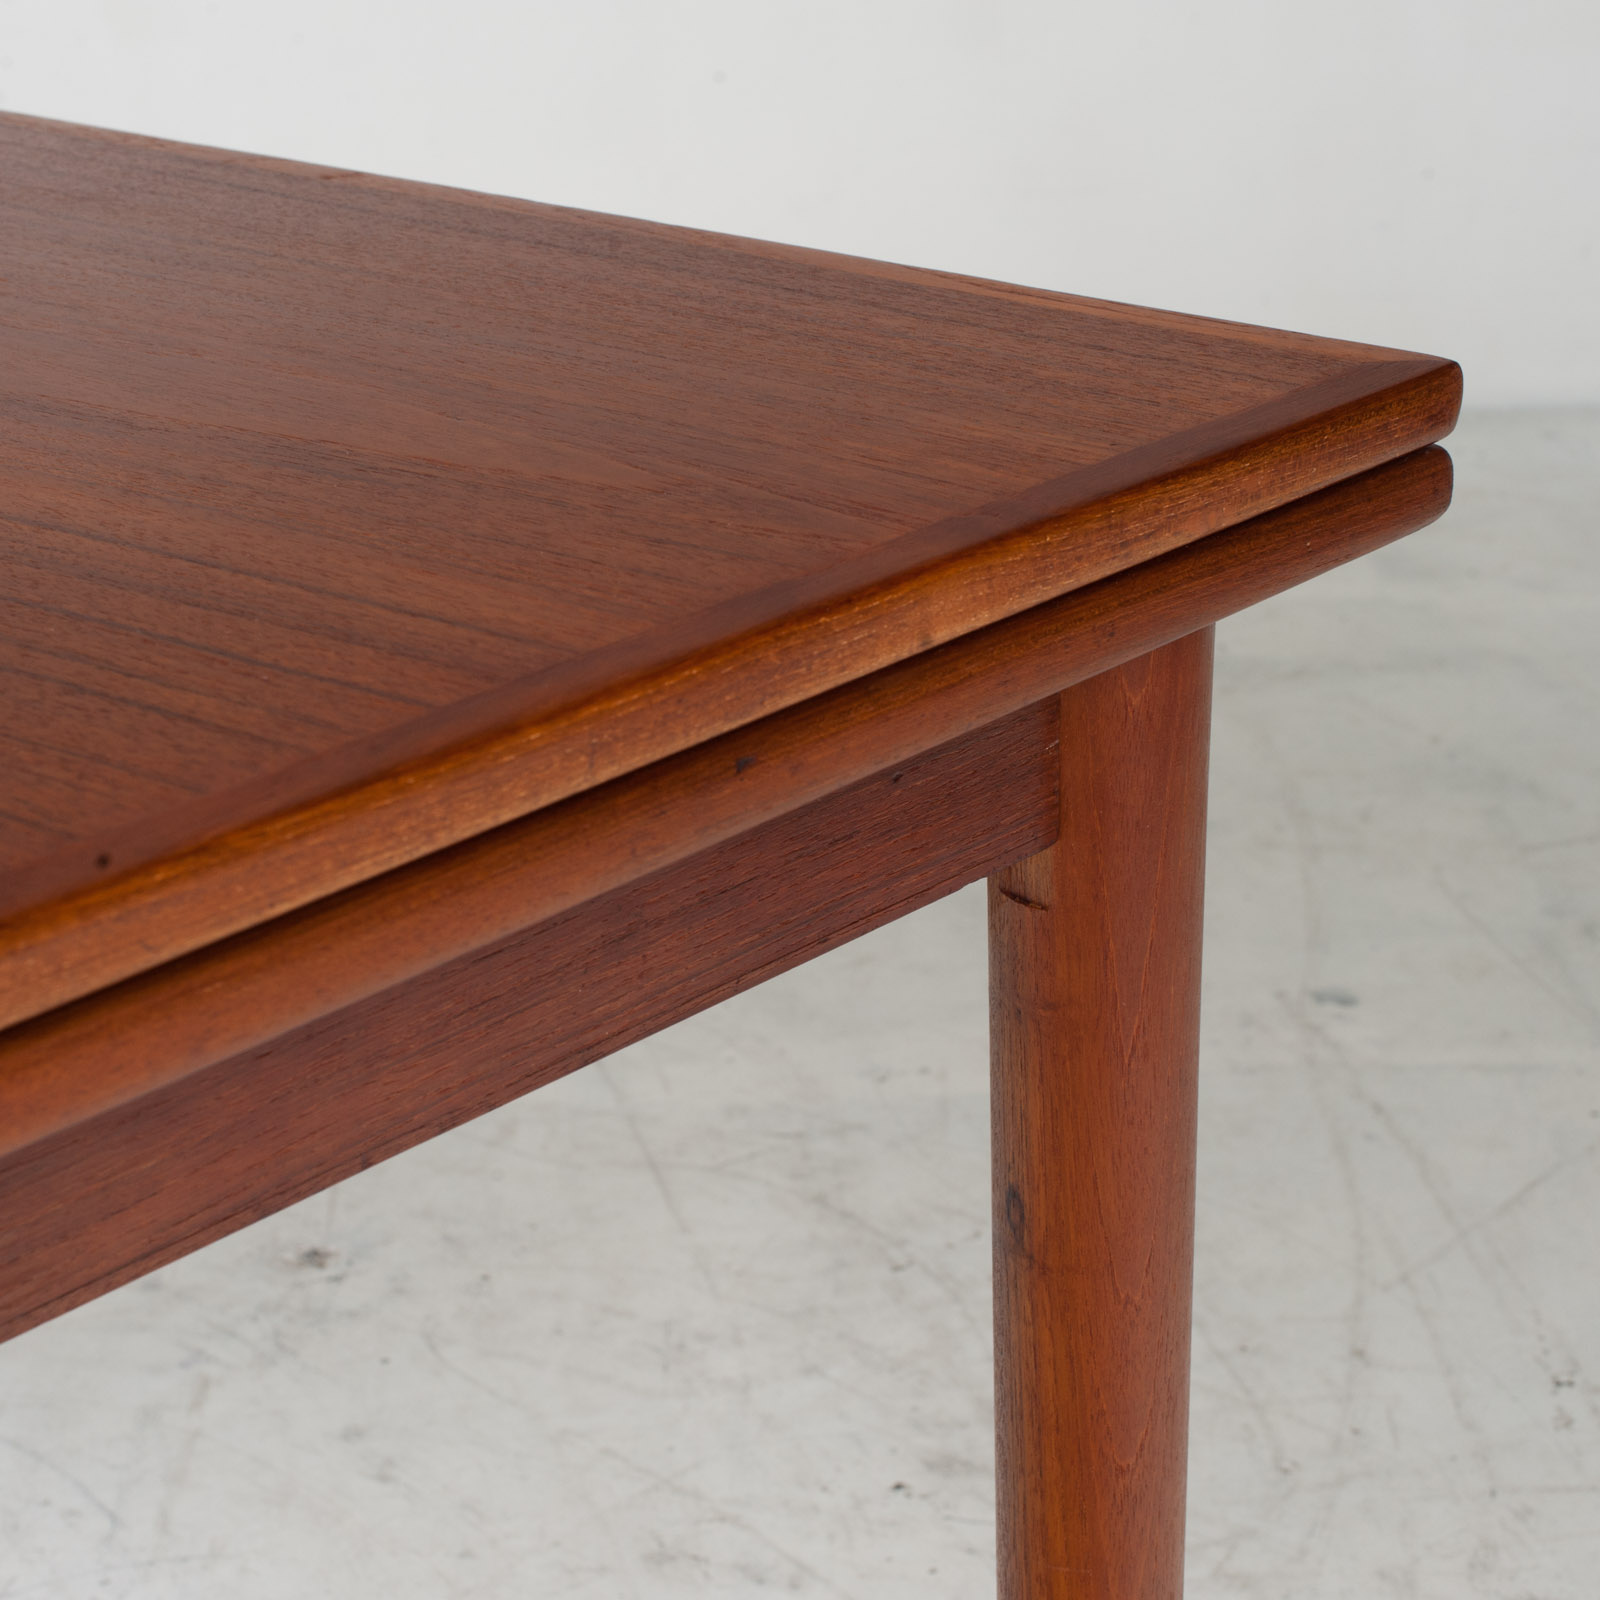 Rectangular Dining Table With Solid Edge In Teak 8